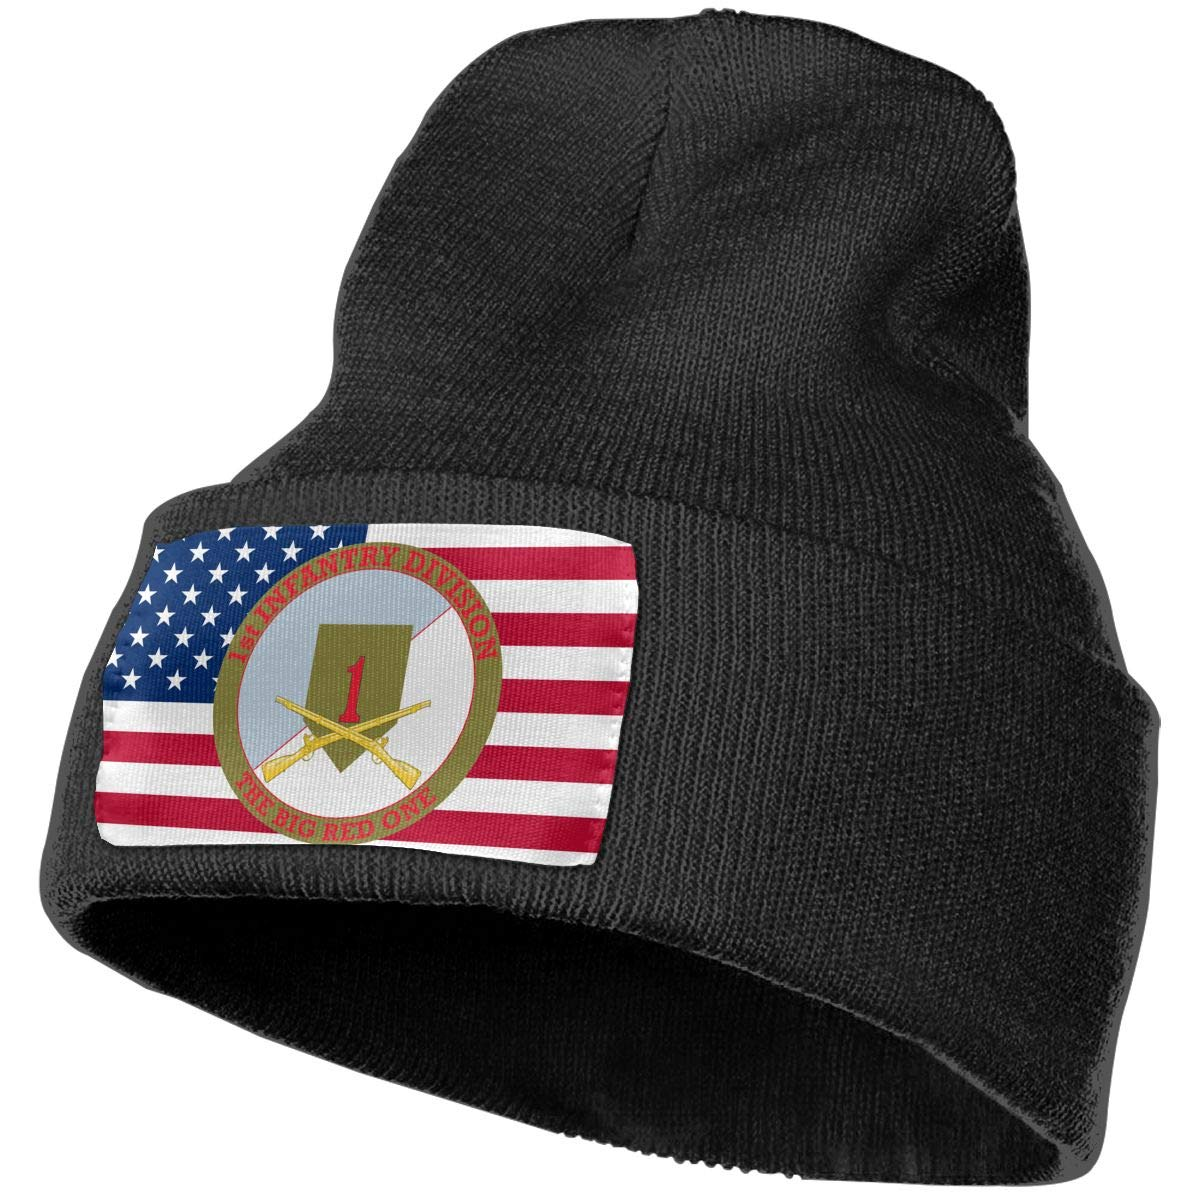 1st Infantry Division with Crossed Rifles Men/&Women Warm Winter Knit Plain Beanie Hat Skull Cap Acrylic Knit Cuff Hat